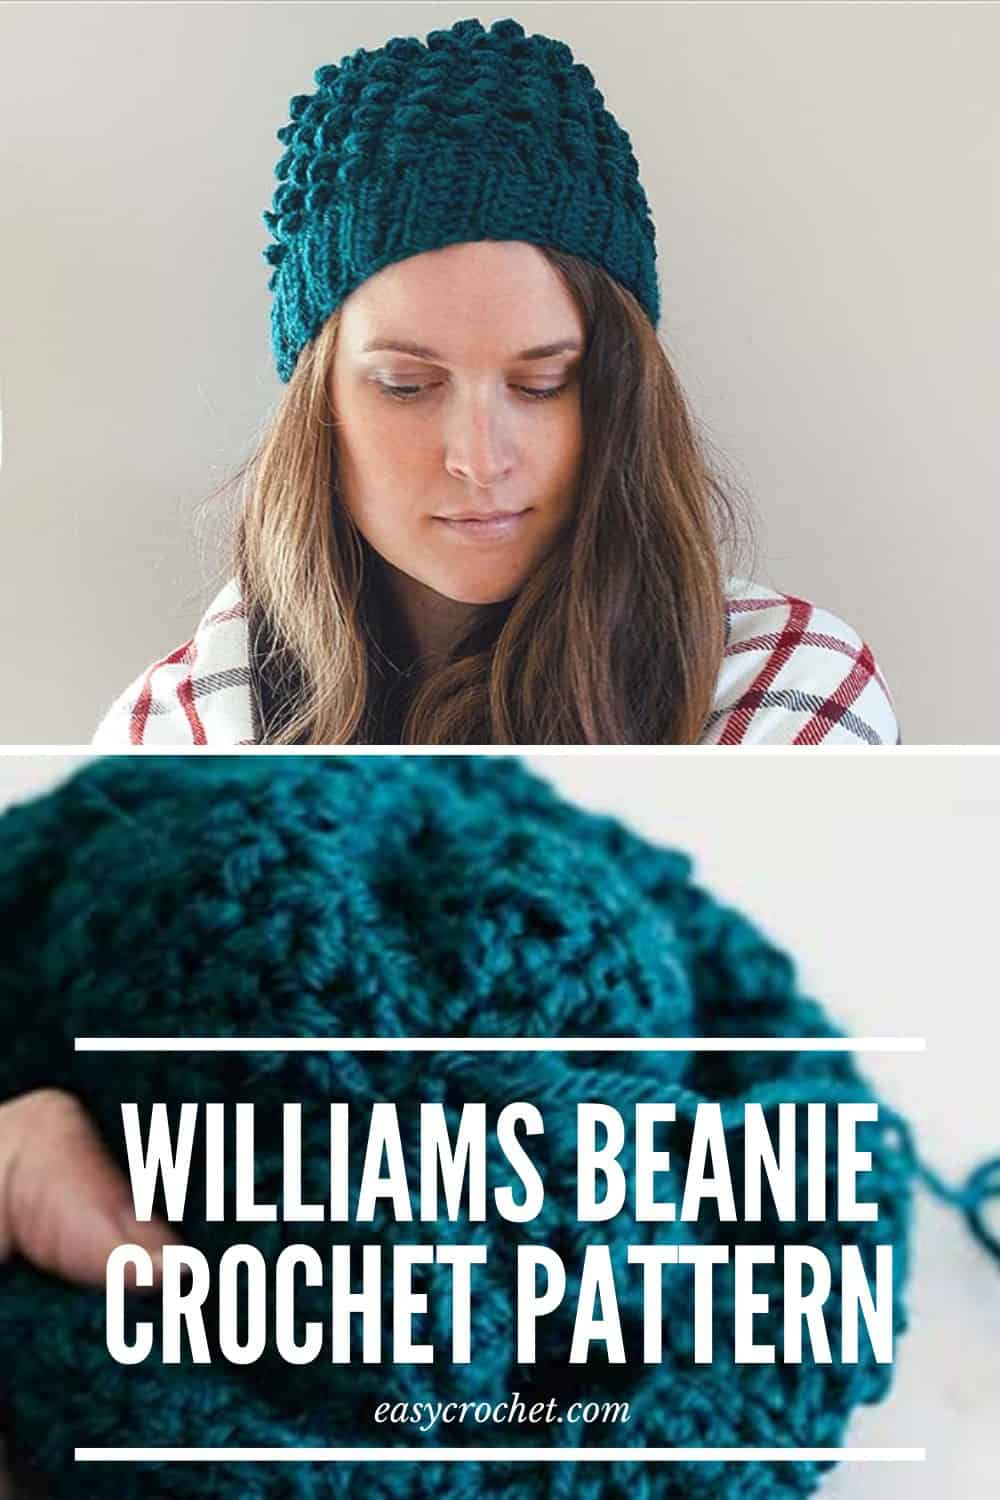 Williams Beanie Crochet Hat Pattern - Free Crochet Hat Pattern by Easy Crochet via @easycrochetcom